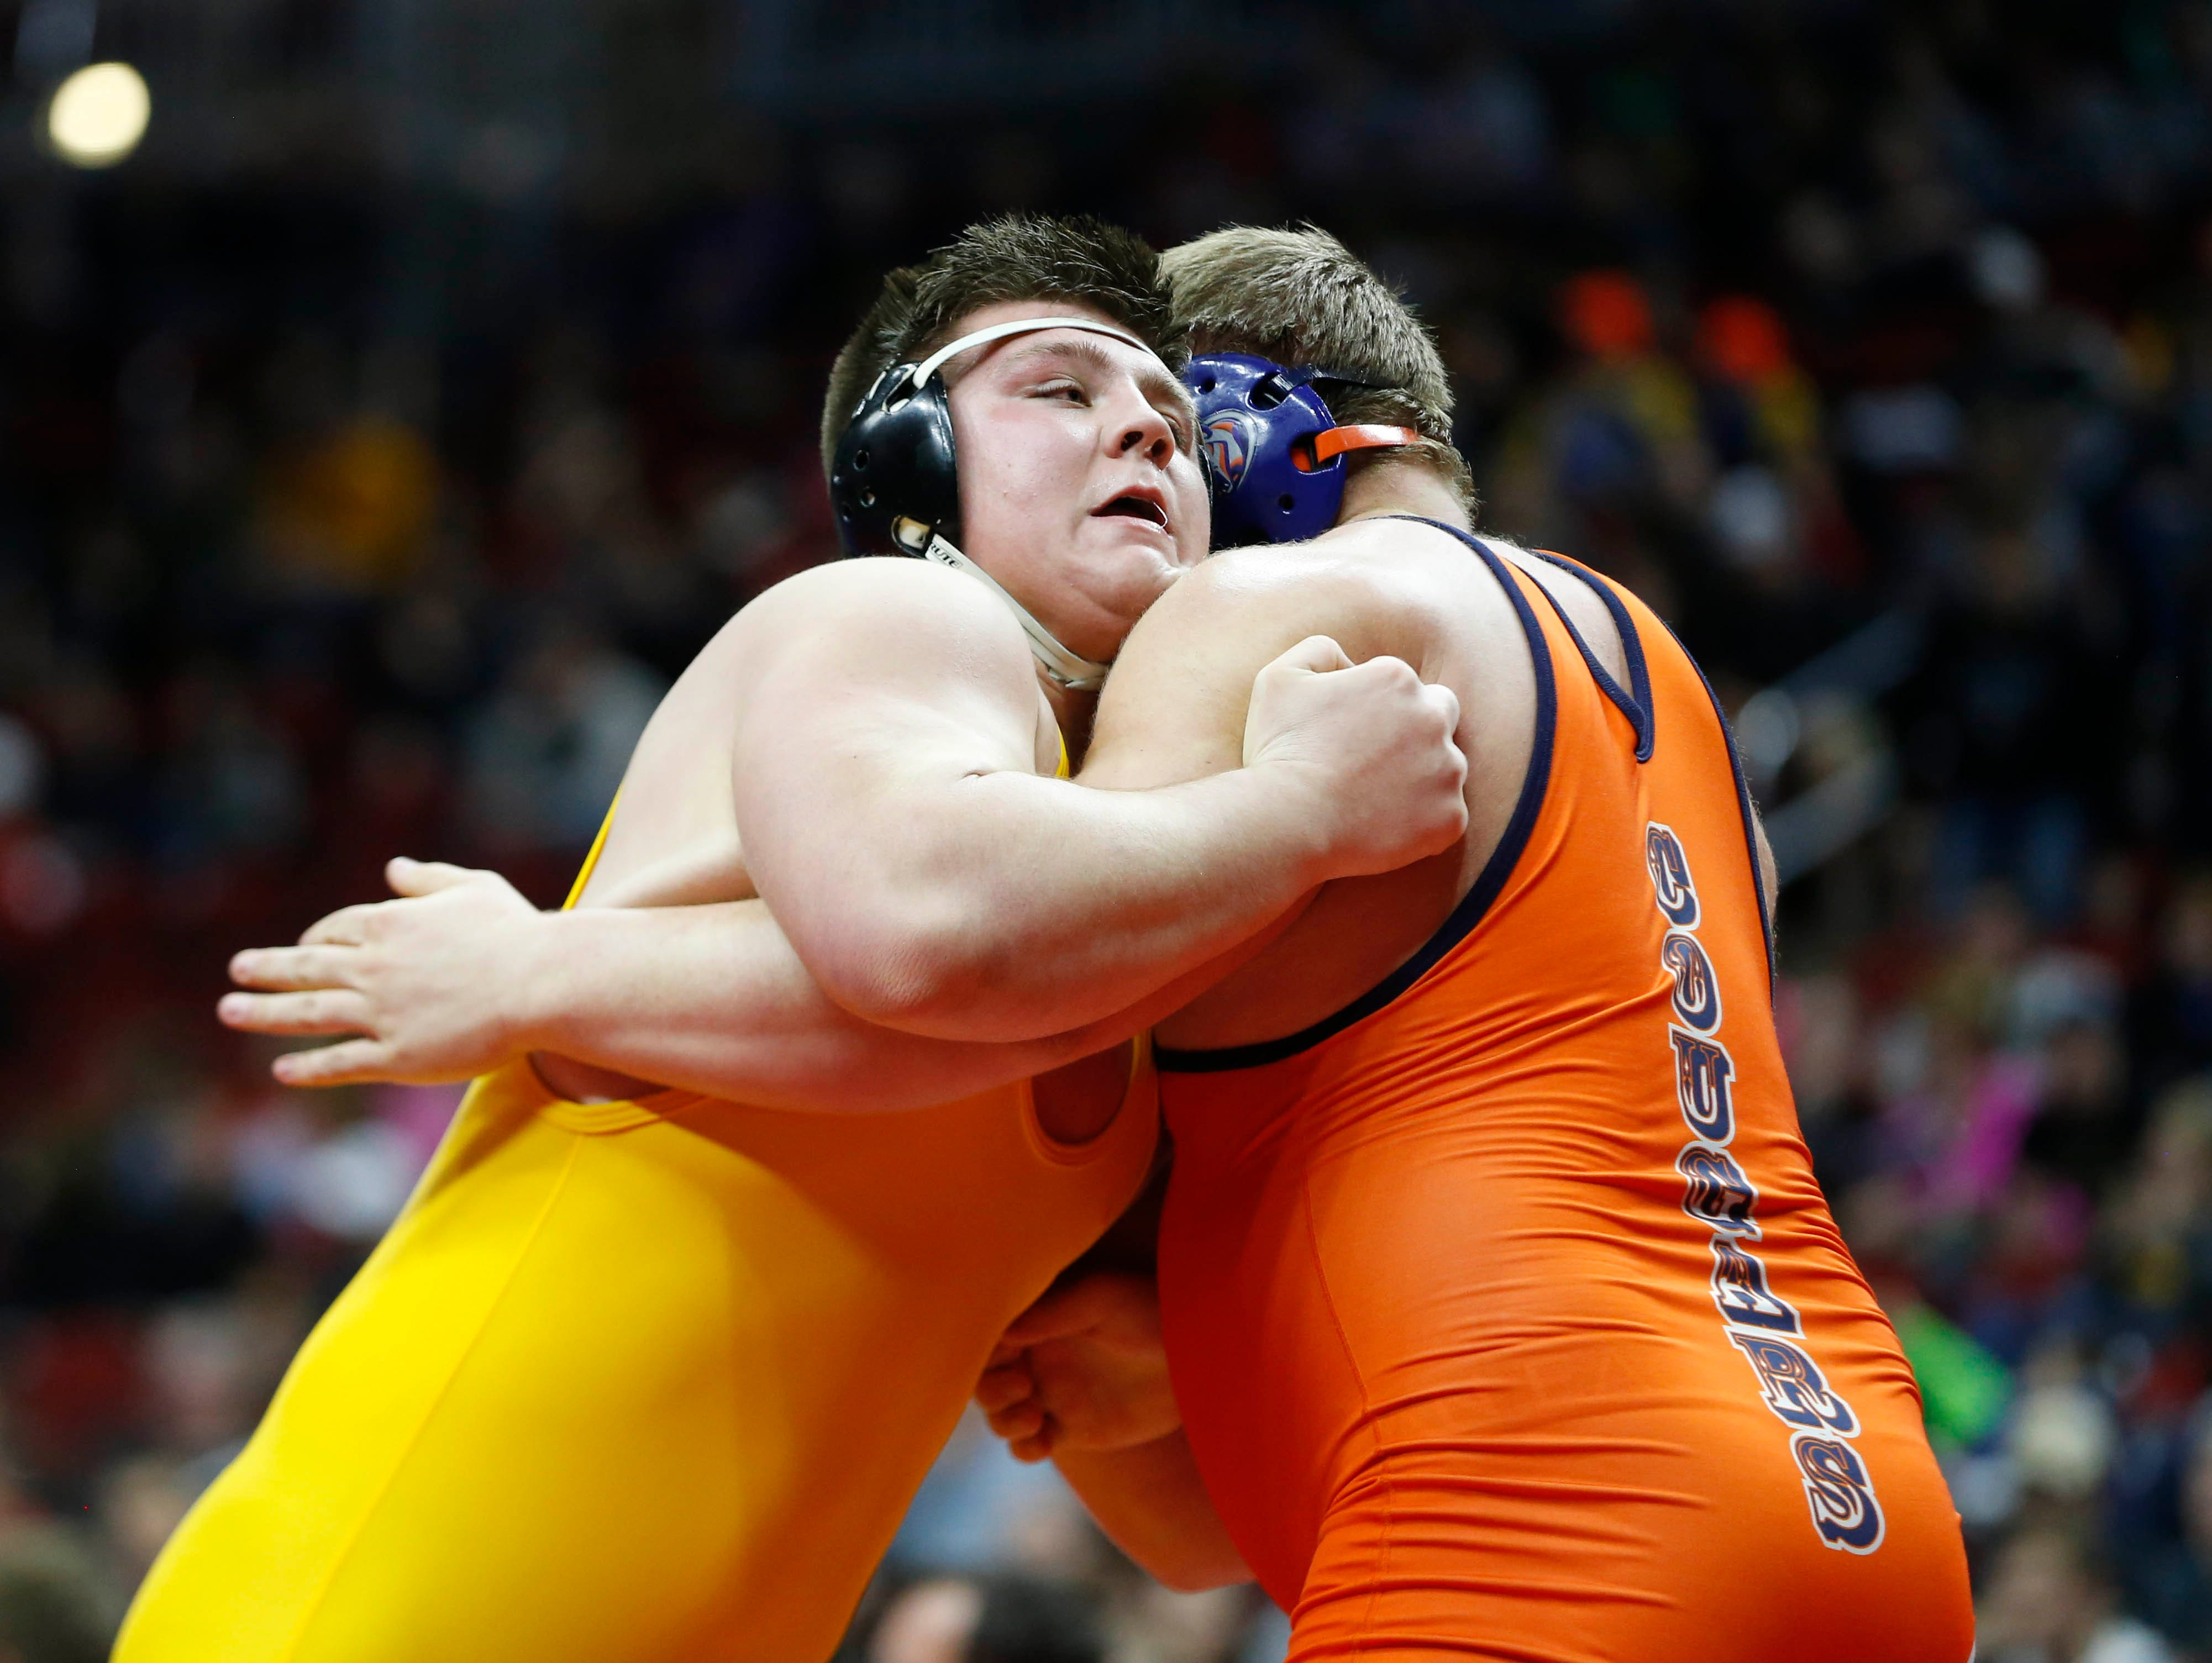 Manson Northwest's Tim Butcher (right) wrestles Regina's Jared Brinkman Saturday, Feb. 20, 2016 during the class 1A state wrestling tournament finals in Des Moines.